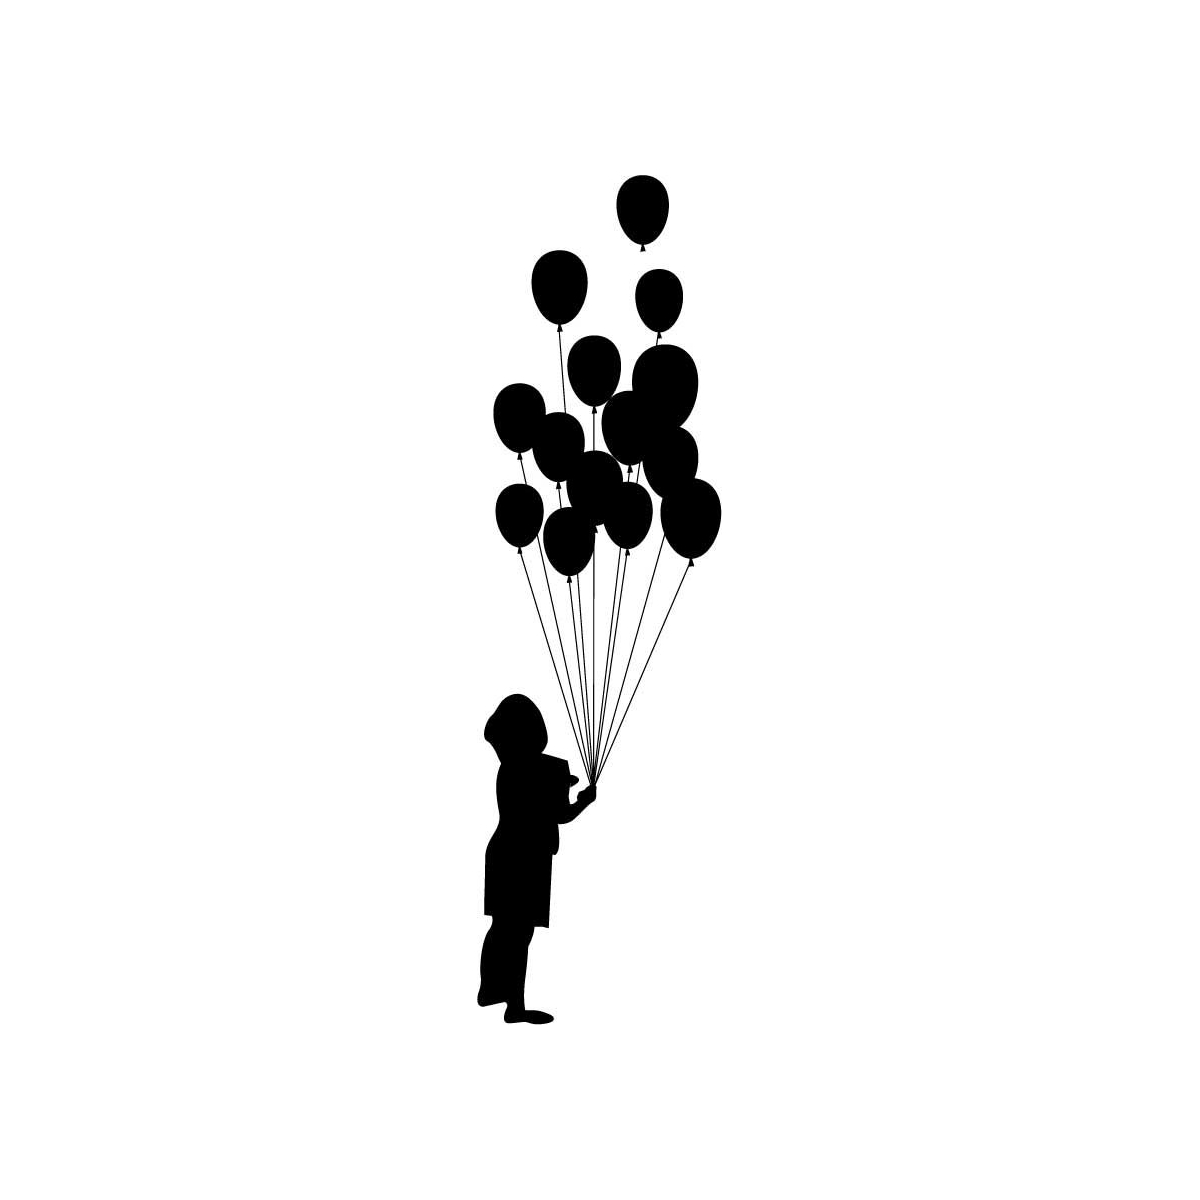 1200x1200 Little Boy Balloon Silhouette Balloon Silhouette Kid Plotten